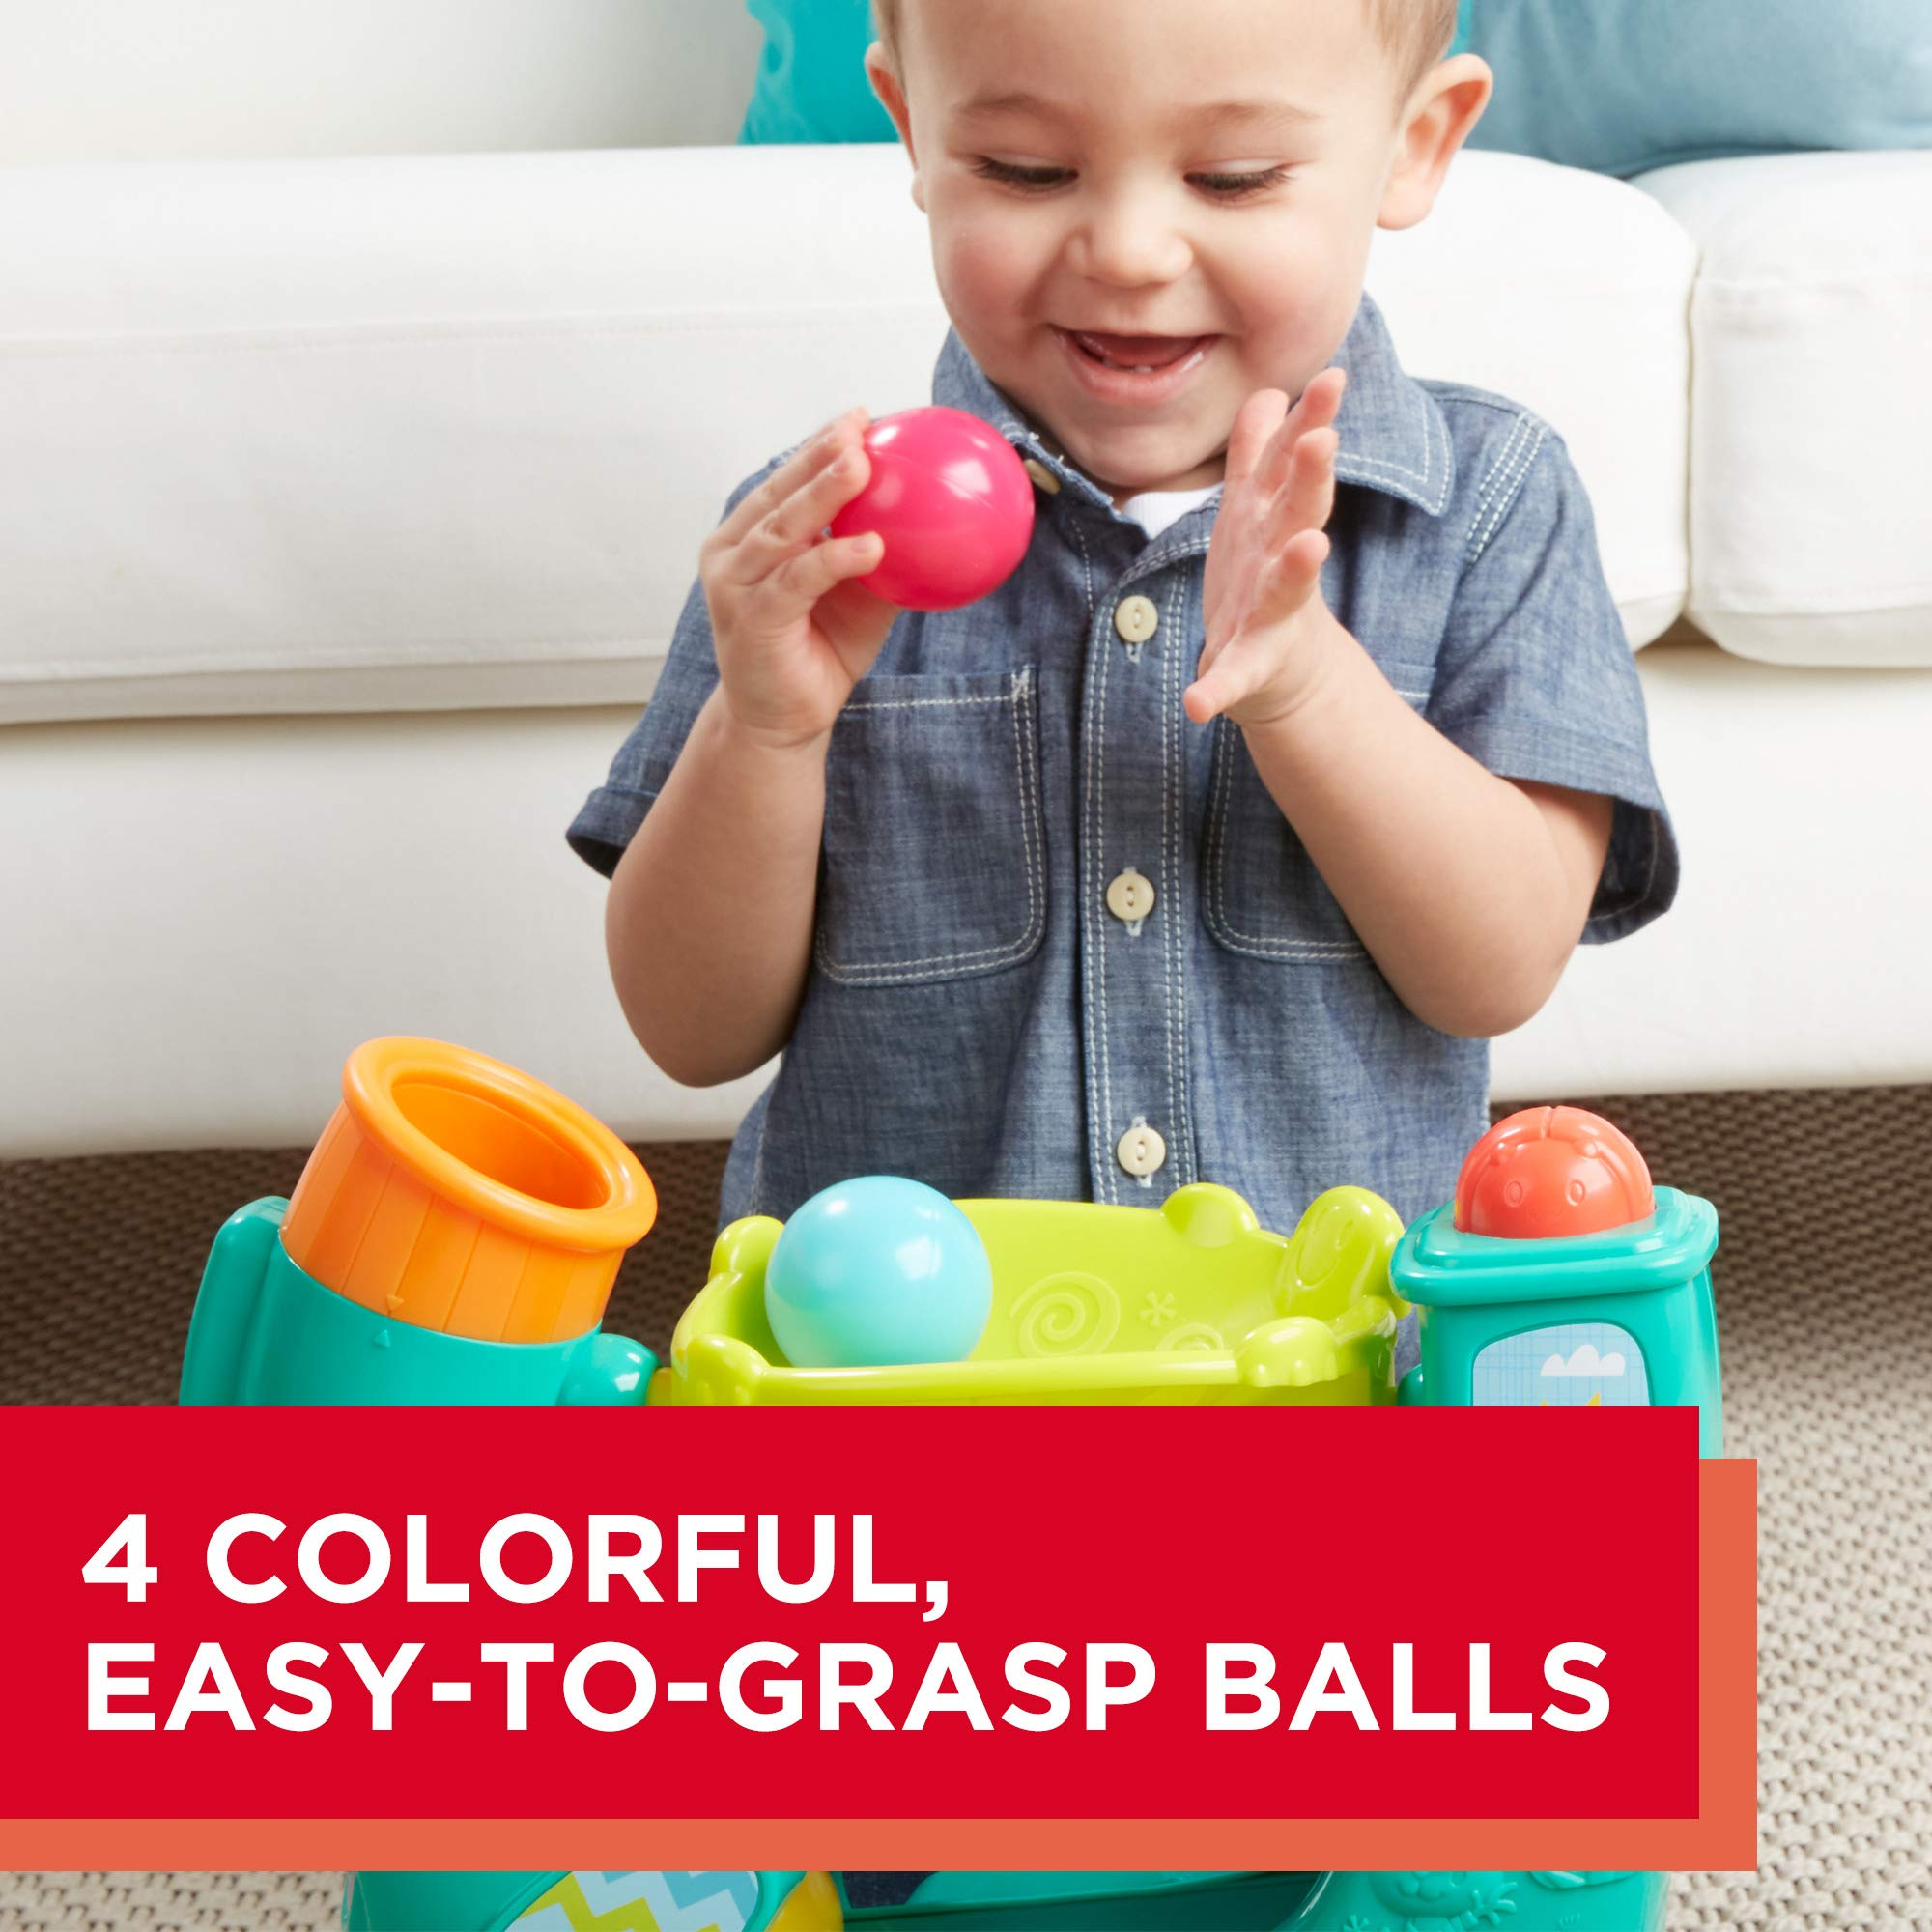 Playskool Chase n Go Ball Popper (Teal), Ages 9 Months and up by Playskool (Image #5)